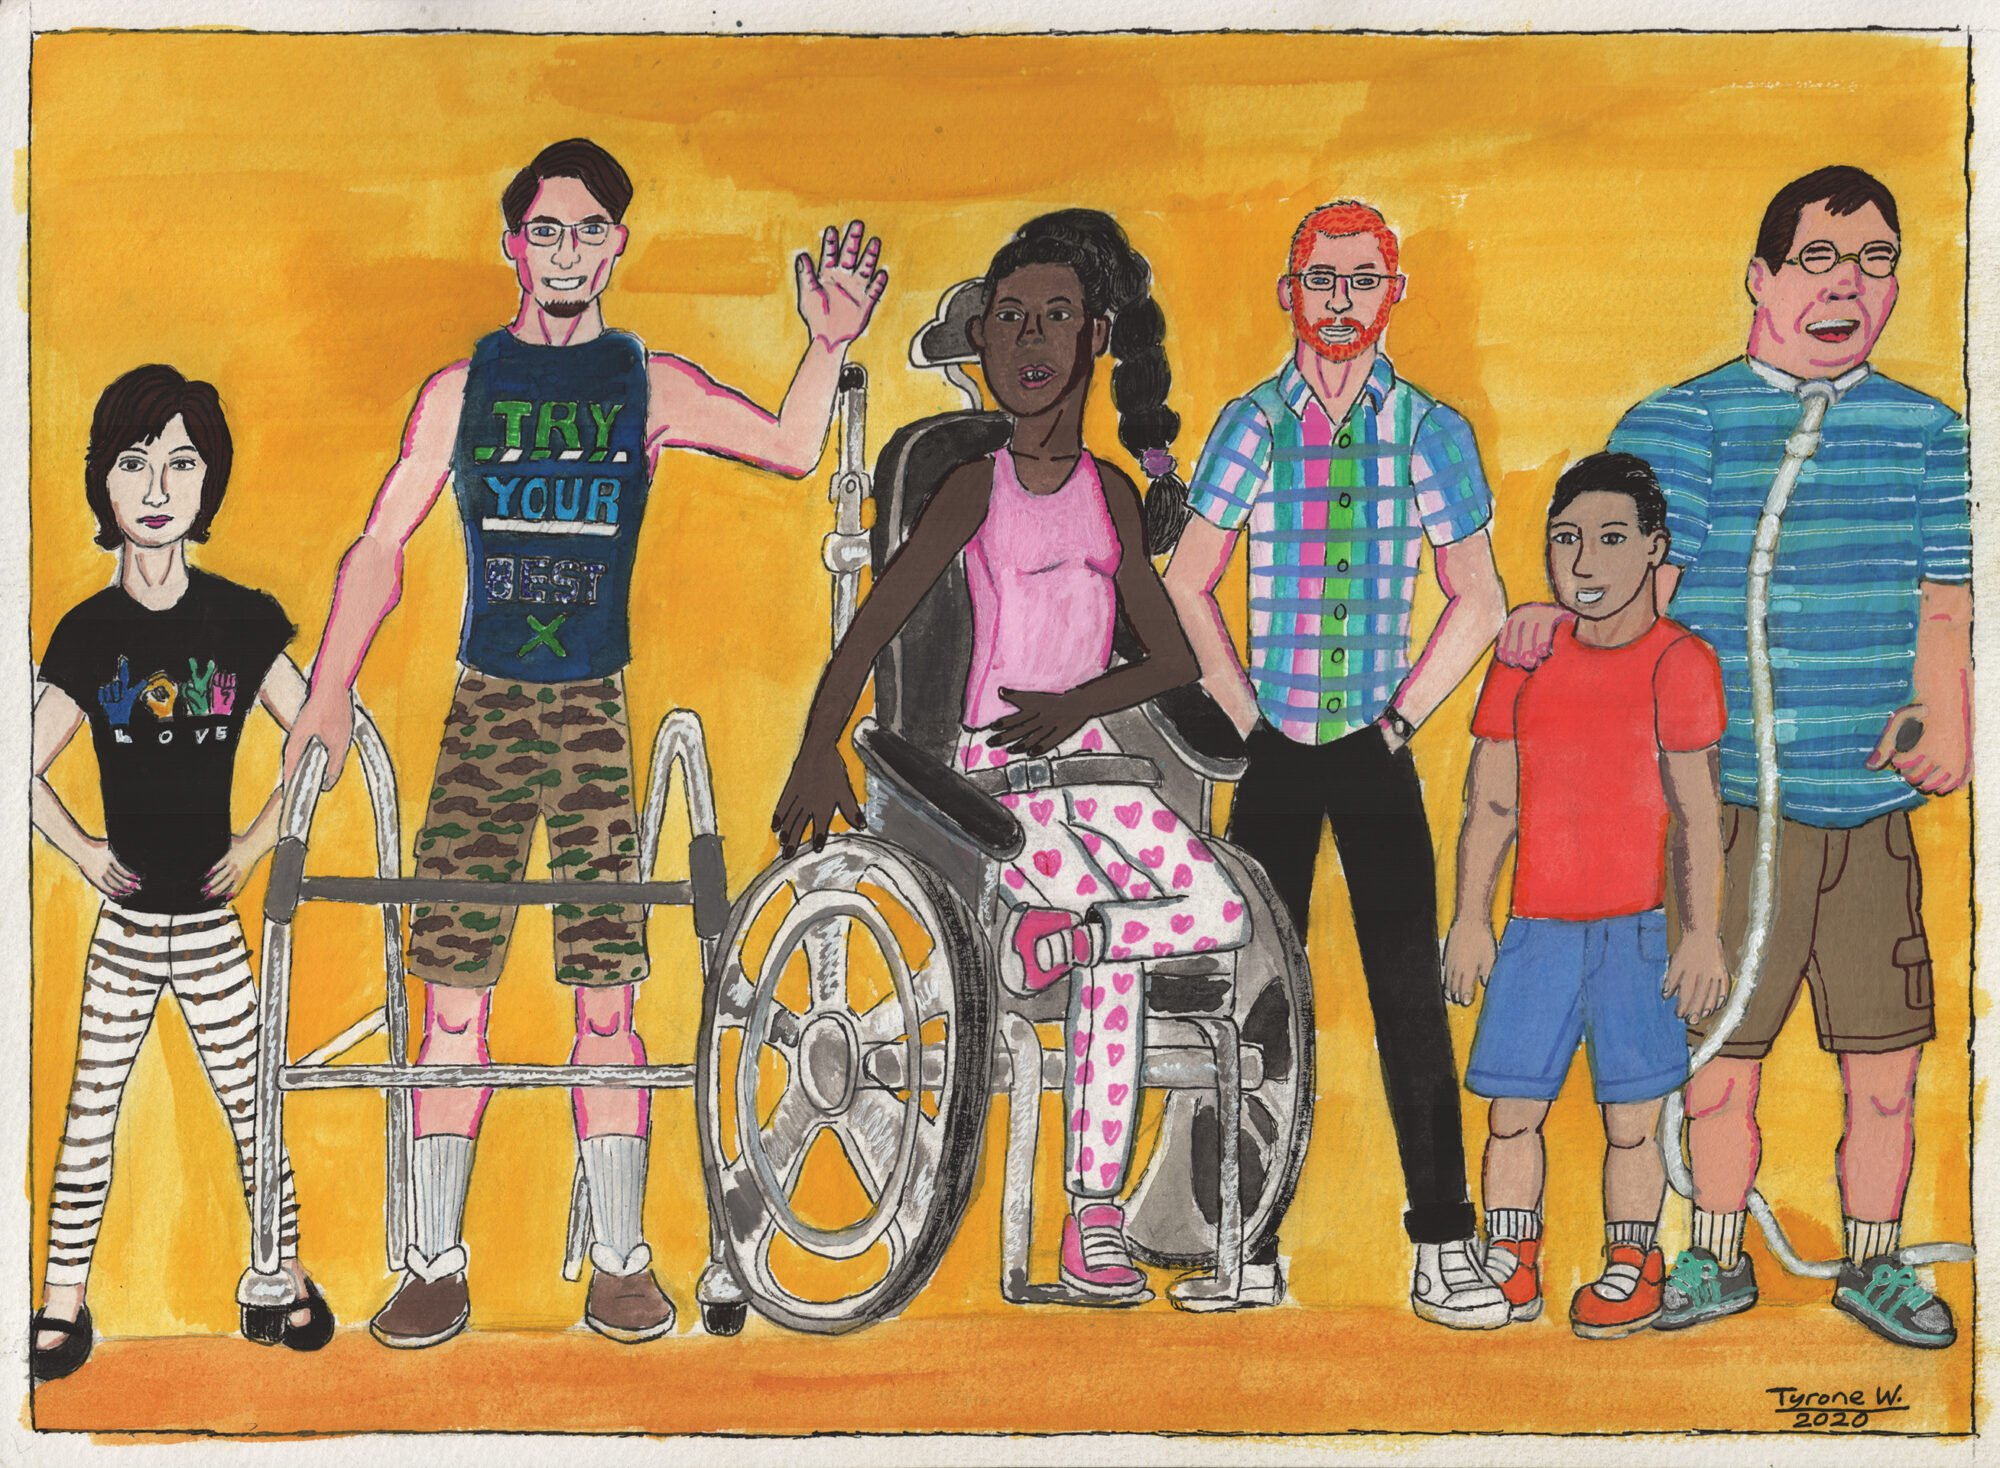 An illustration of seven people of varying ages, races and abilities, together against an orange background.